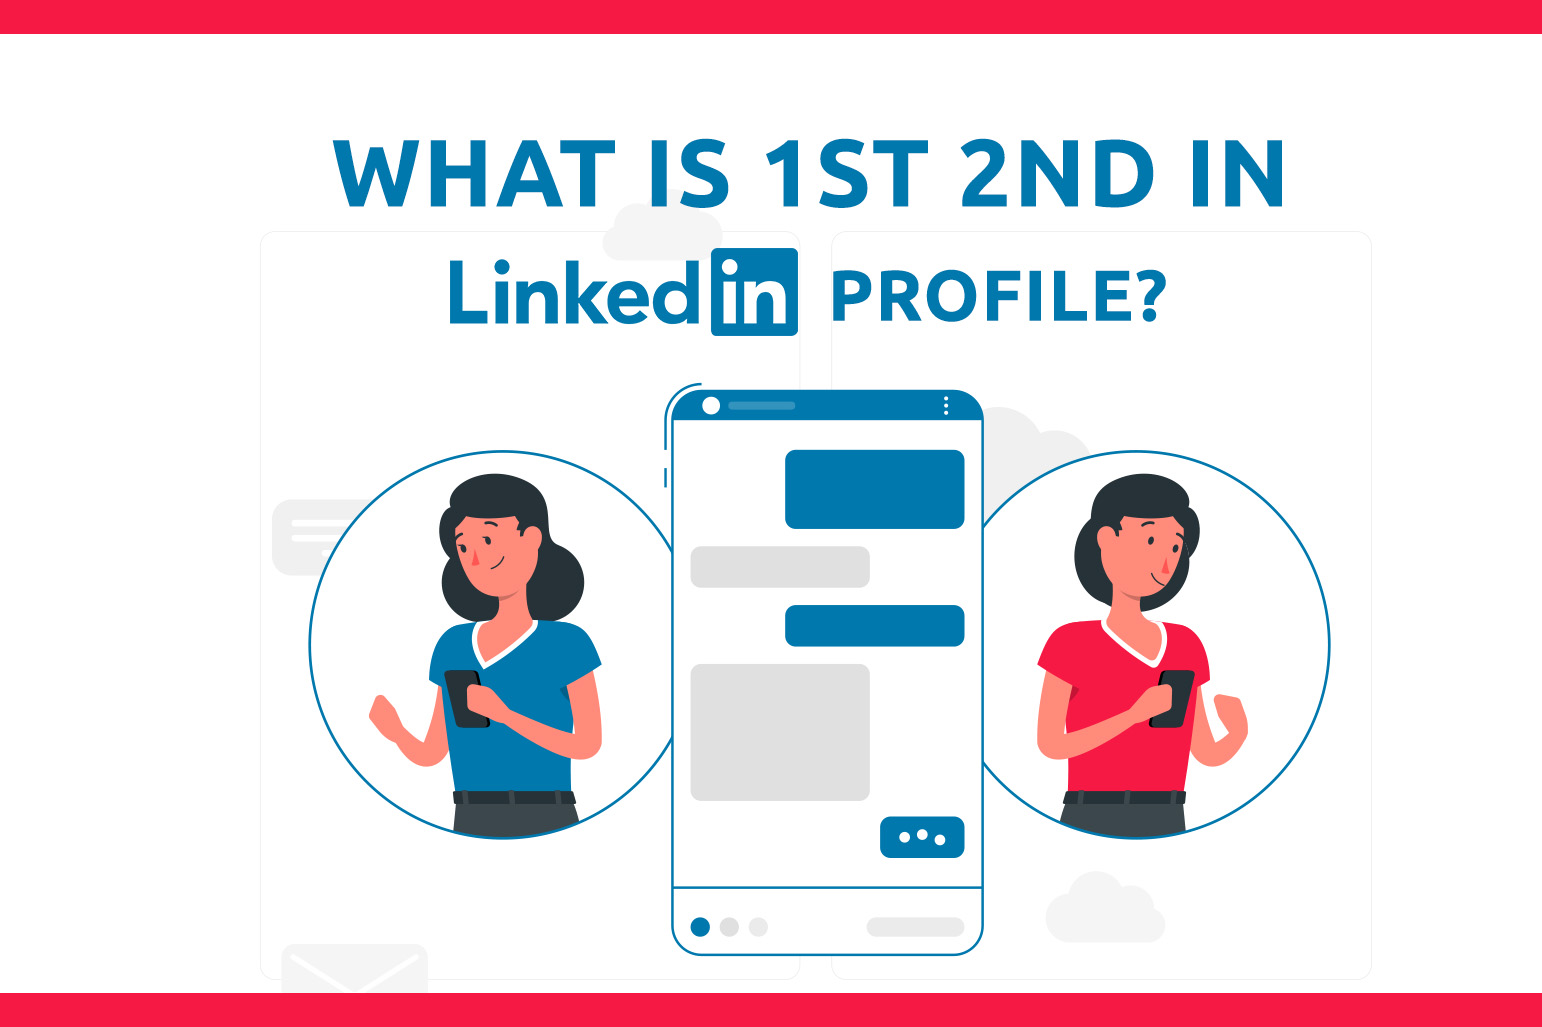 LinkedIn Profile: What Do 1st And 2nd Mean?